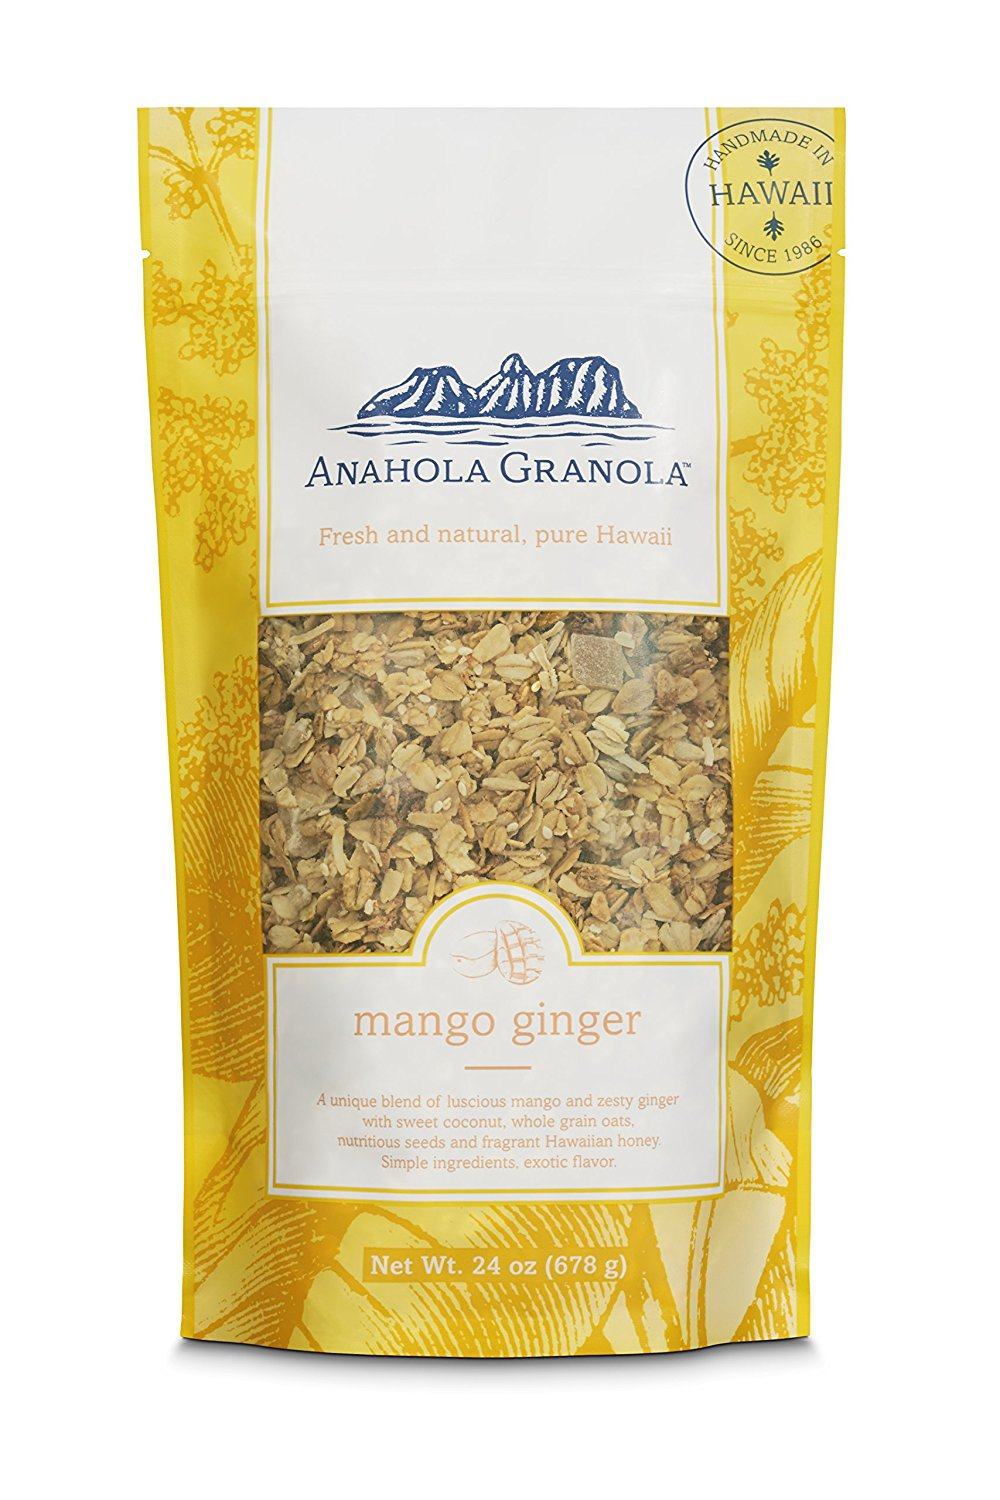 Anahola Granola 24 Oz Bag Mango Ginger